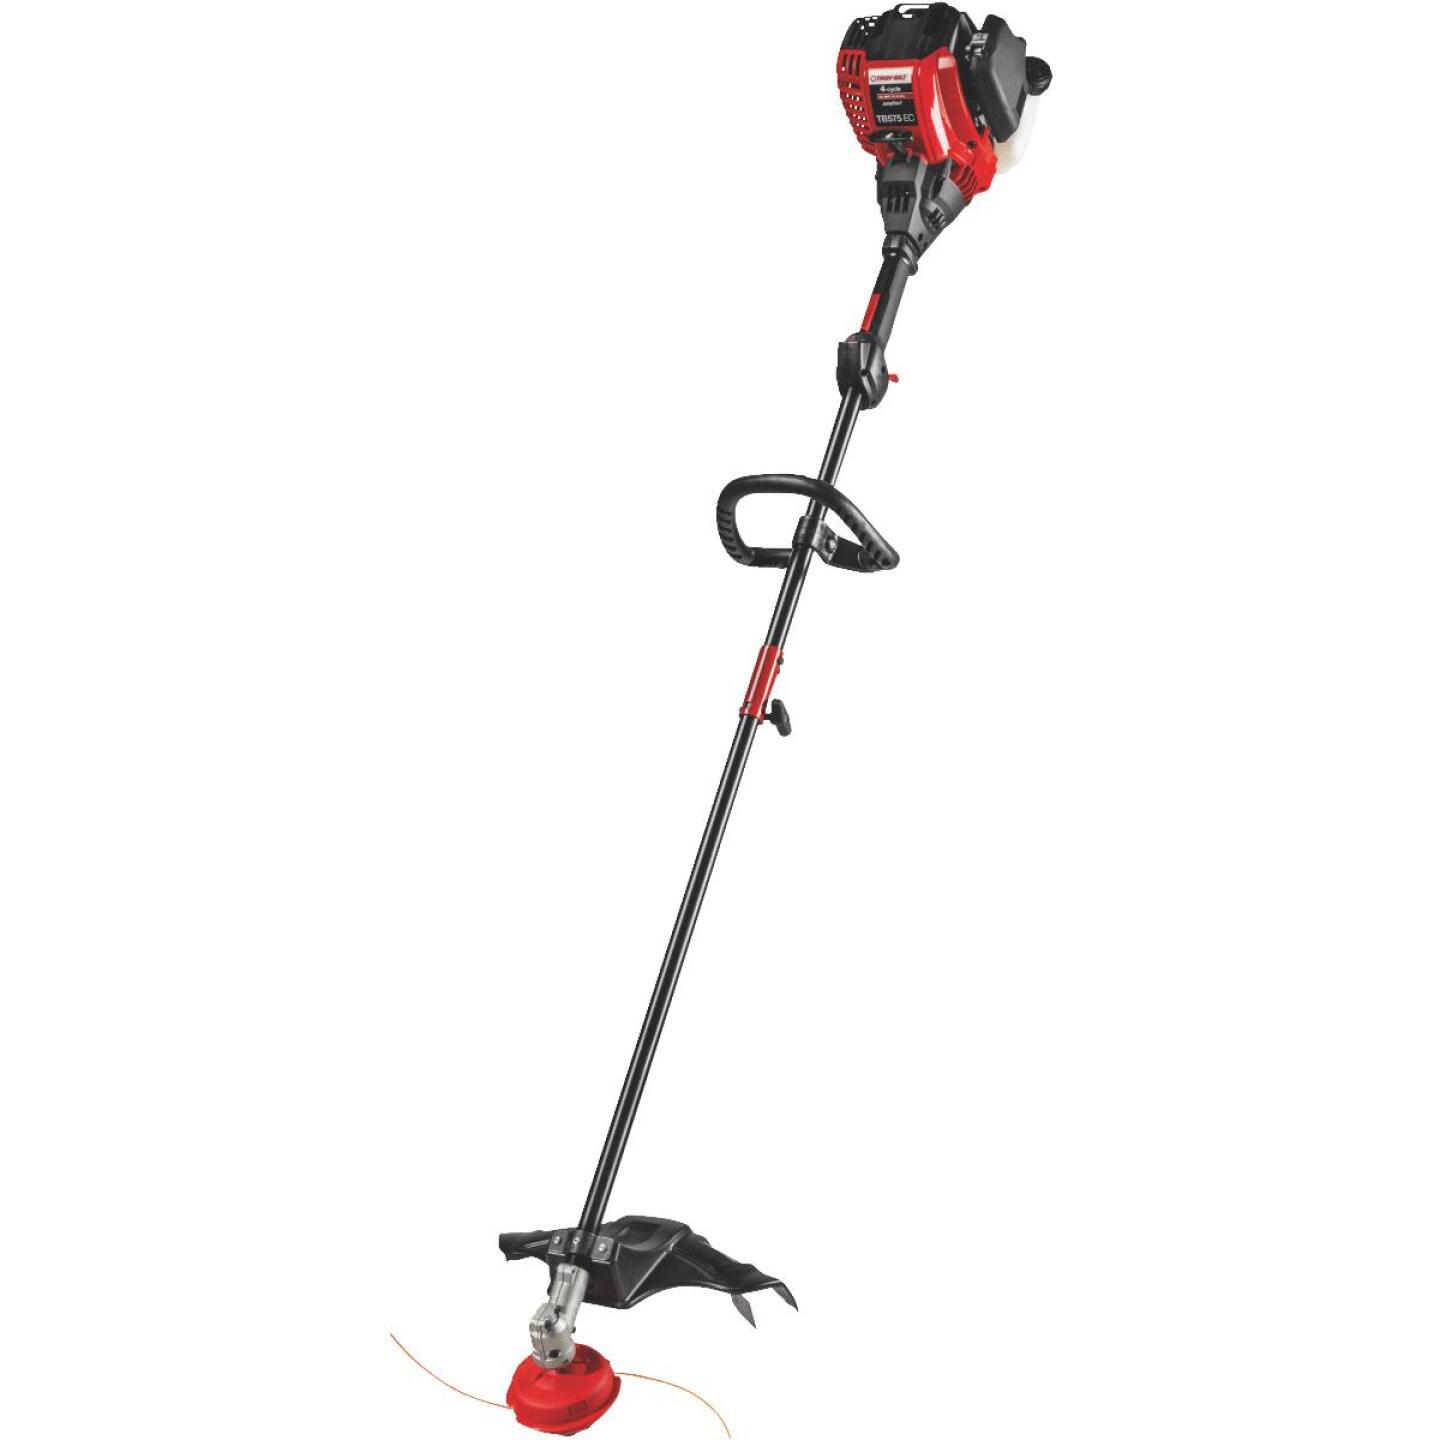 Troy-Bilt TB304S 30cc 4-Cycle Straight Shaft Gas Trimmer Image 1